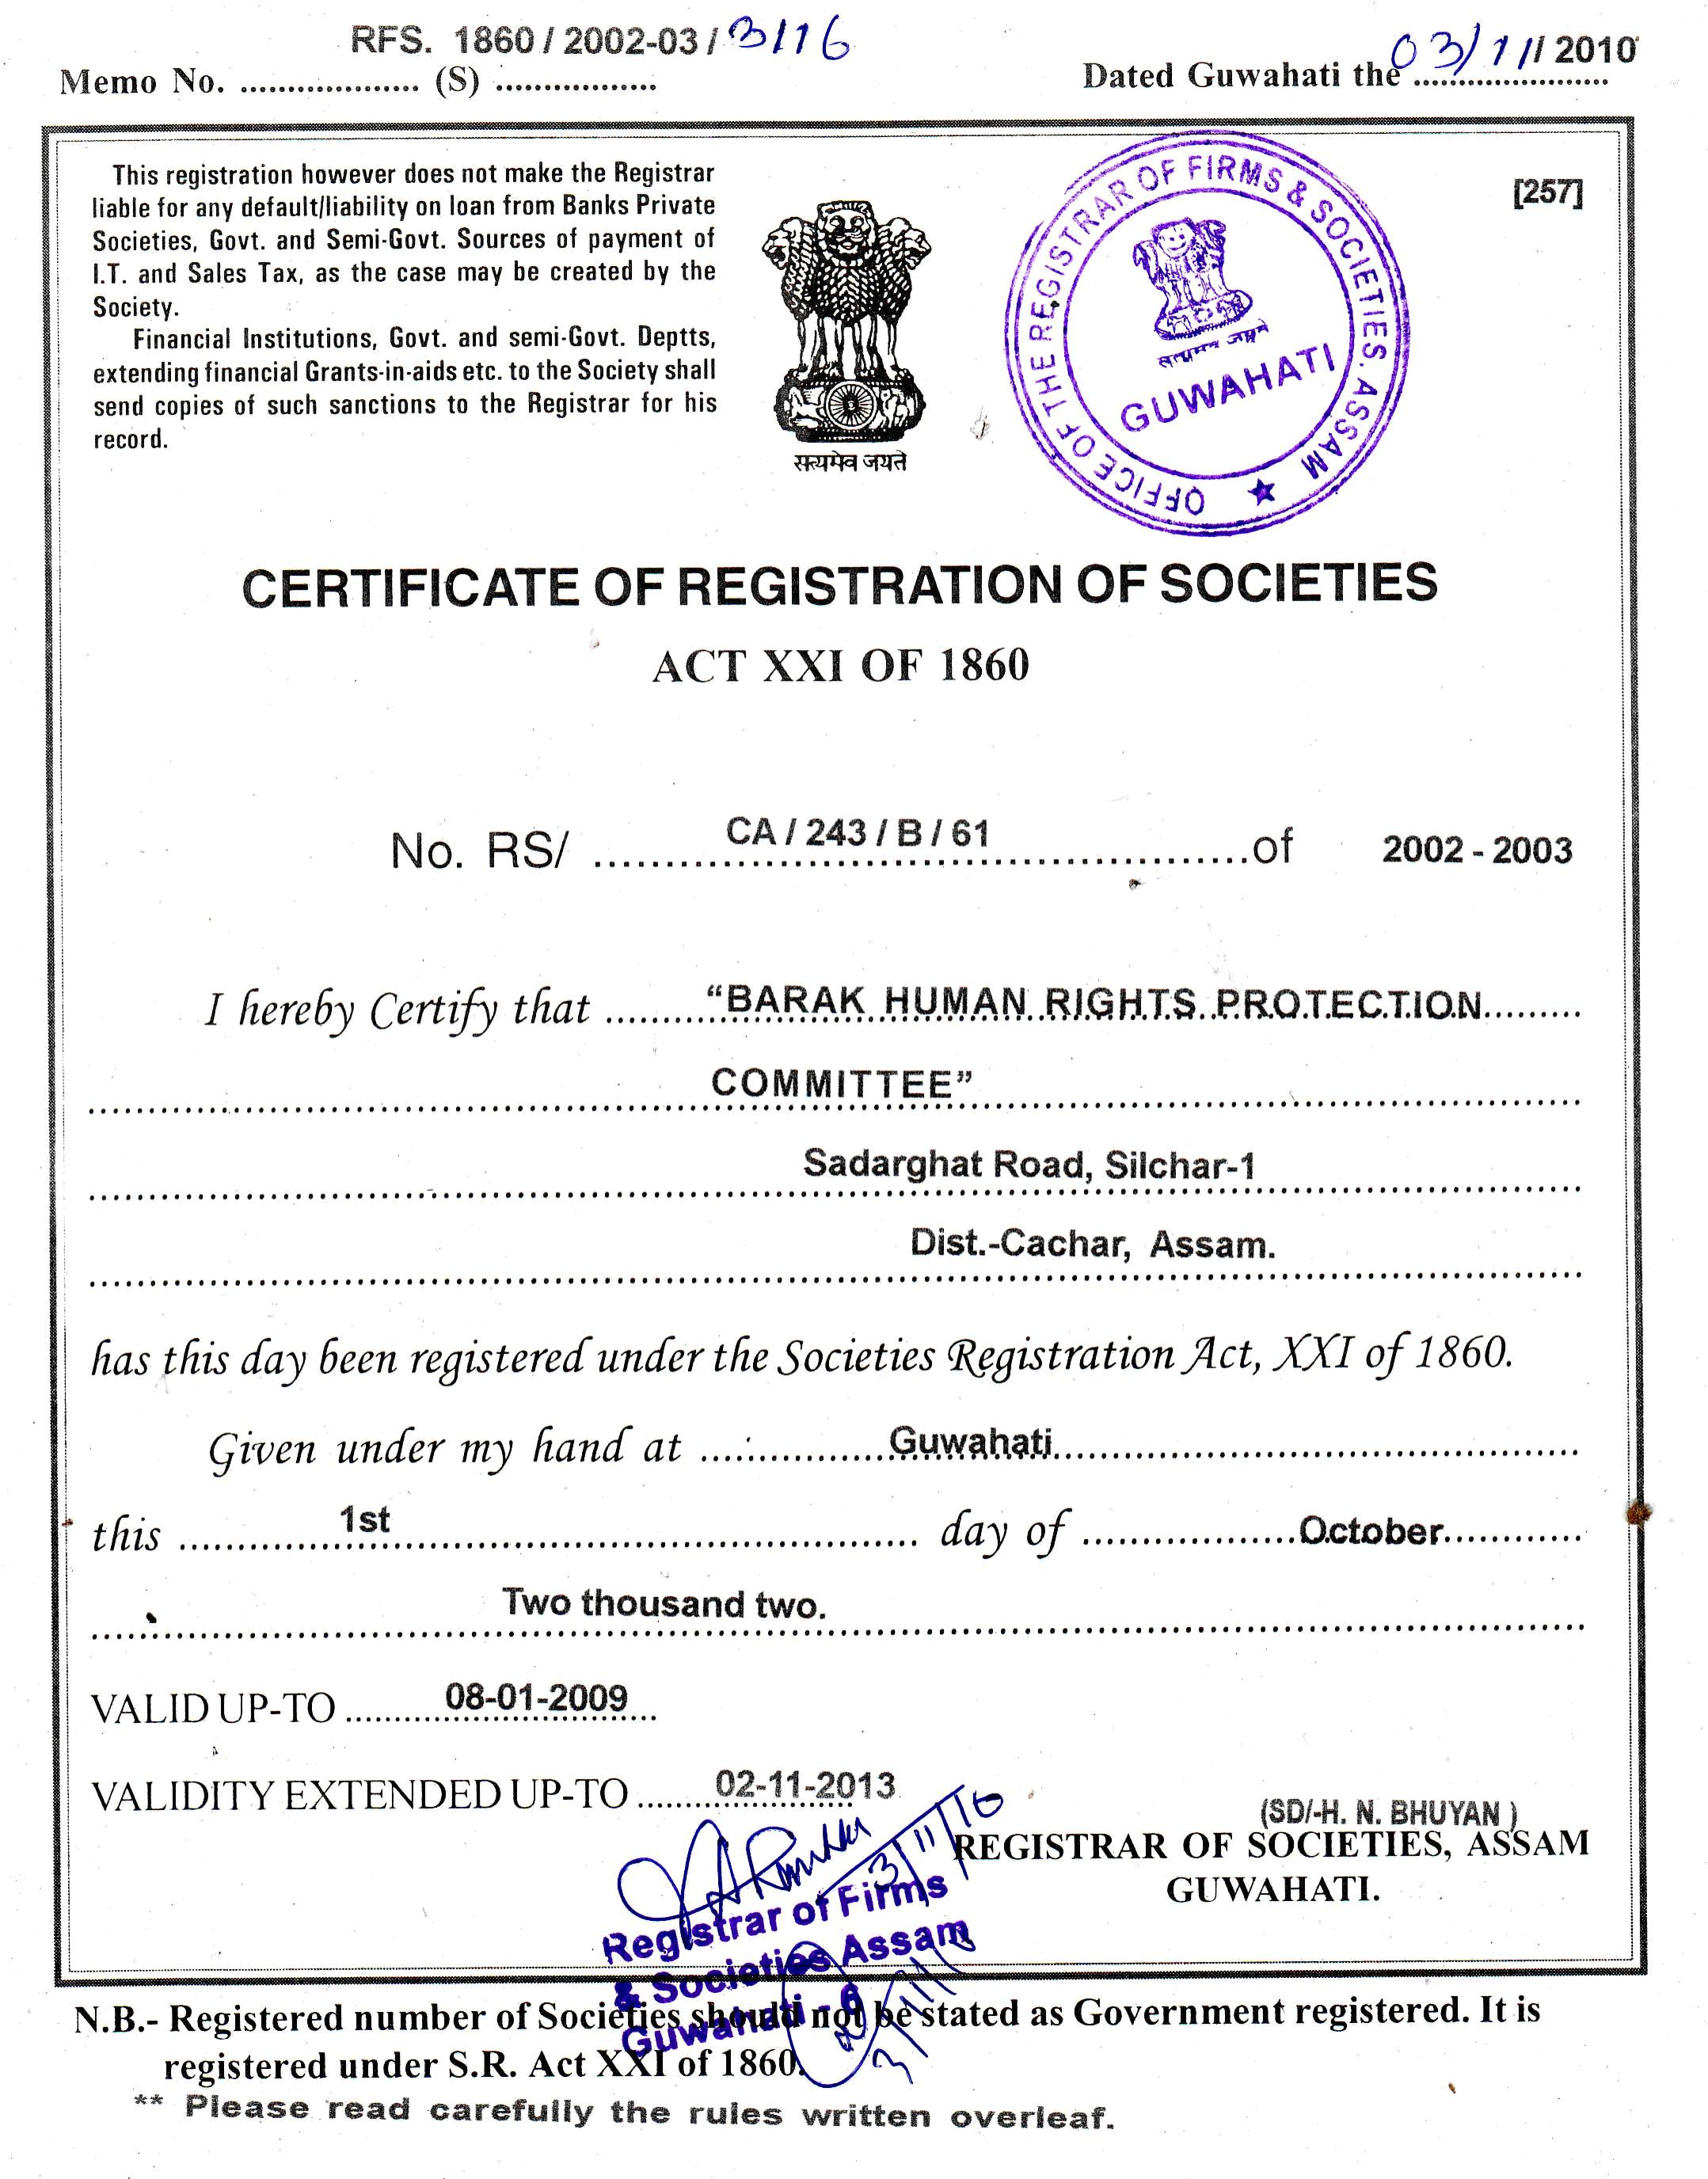 Lovely collection of duplicate birth certificate business cards check birth certificate online andhra jyothi check birth aiddatafo Images